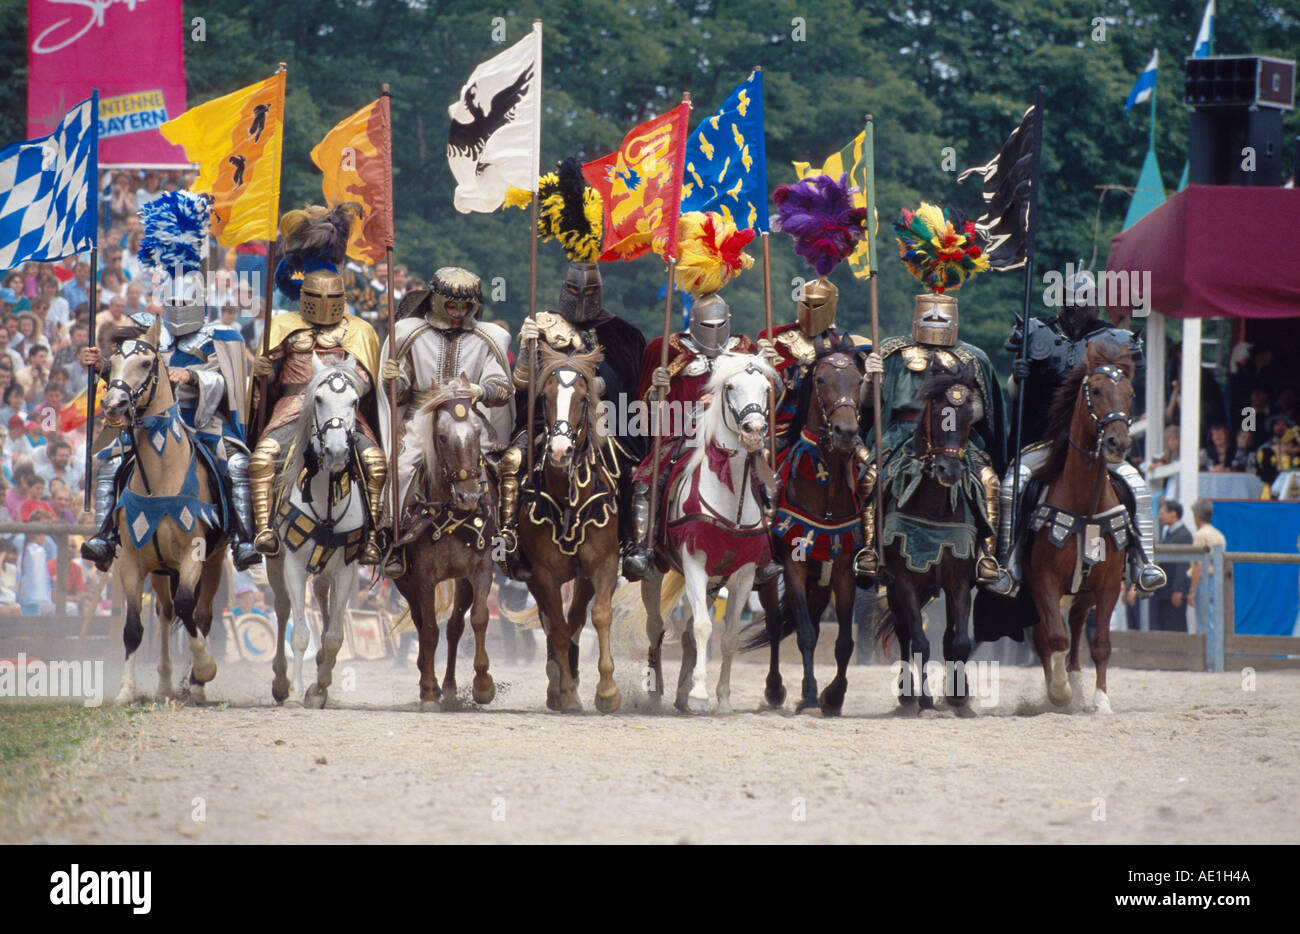 Knight Games, galahads in amour with flags, Germany, Bavaria, Kaltenberg - Stock Image